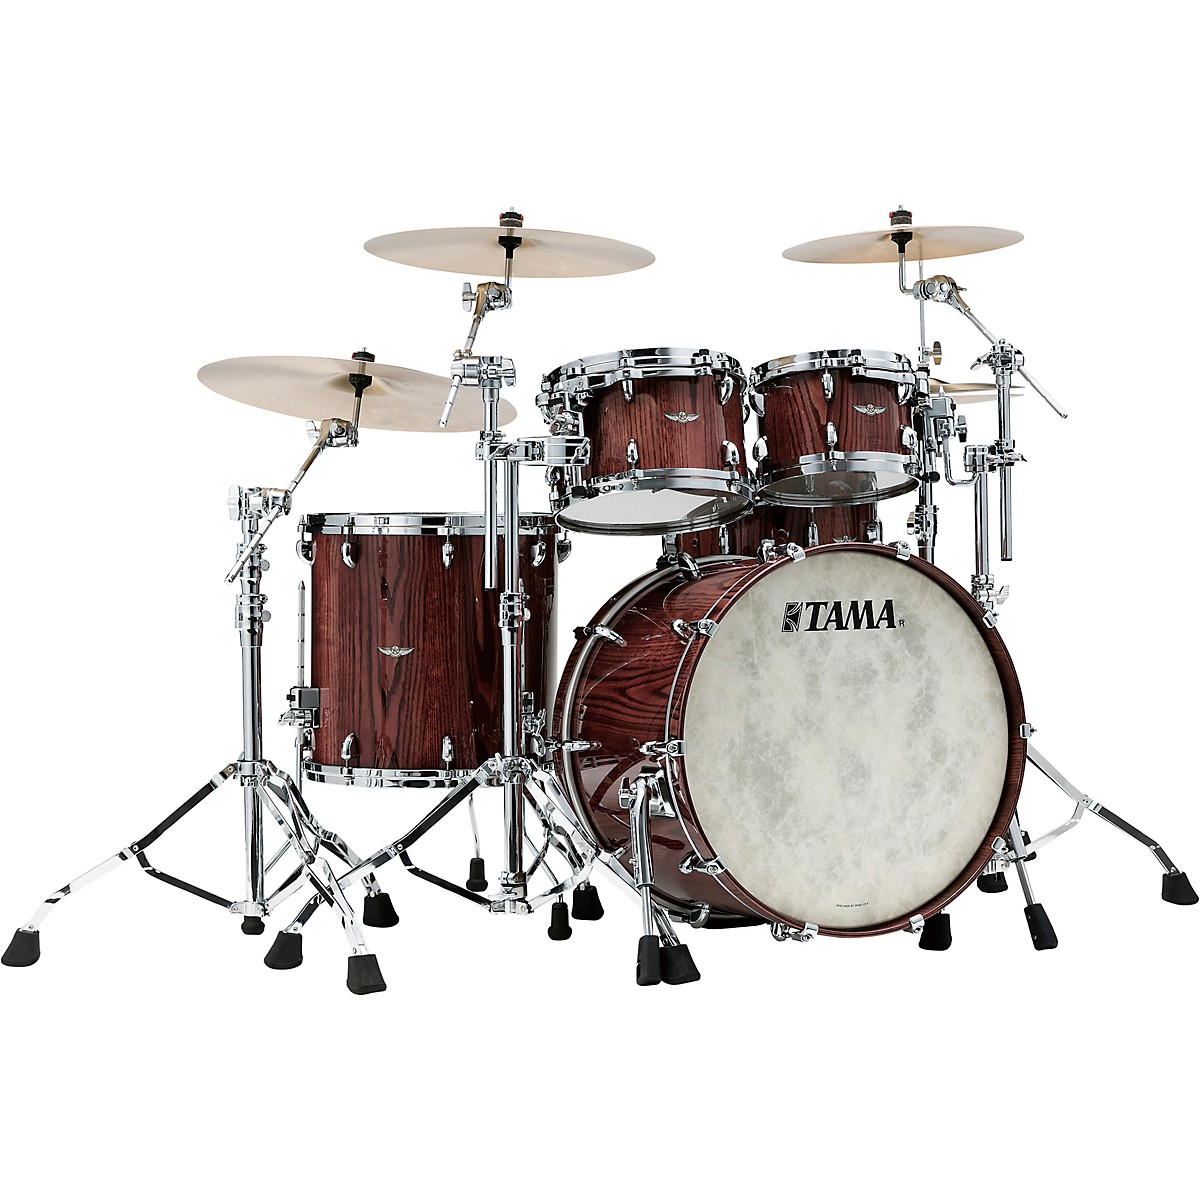 TAMA Star Walnut 4-Piece Shell Pack with 22 in. Bass Drum